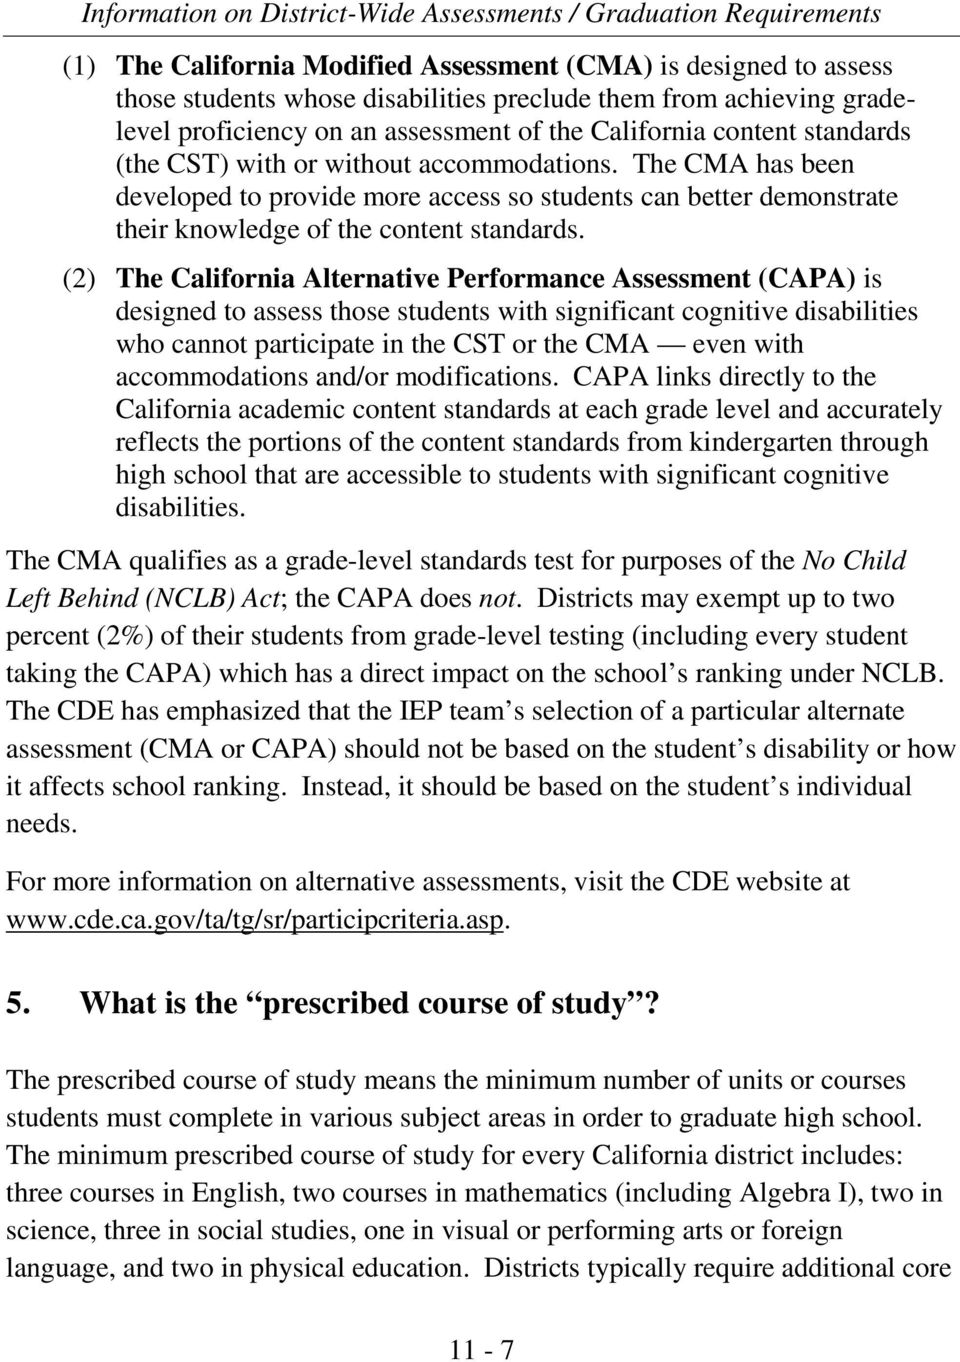 (2) The California Alternative Performance Assessment (CAPA) is designed to assess those students with significant cognitive disabilities who cannot participate in the CST or the CMA even with